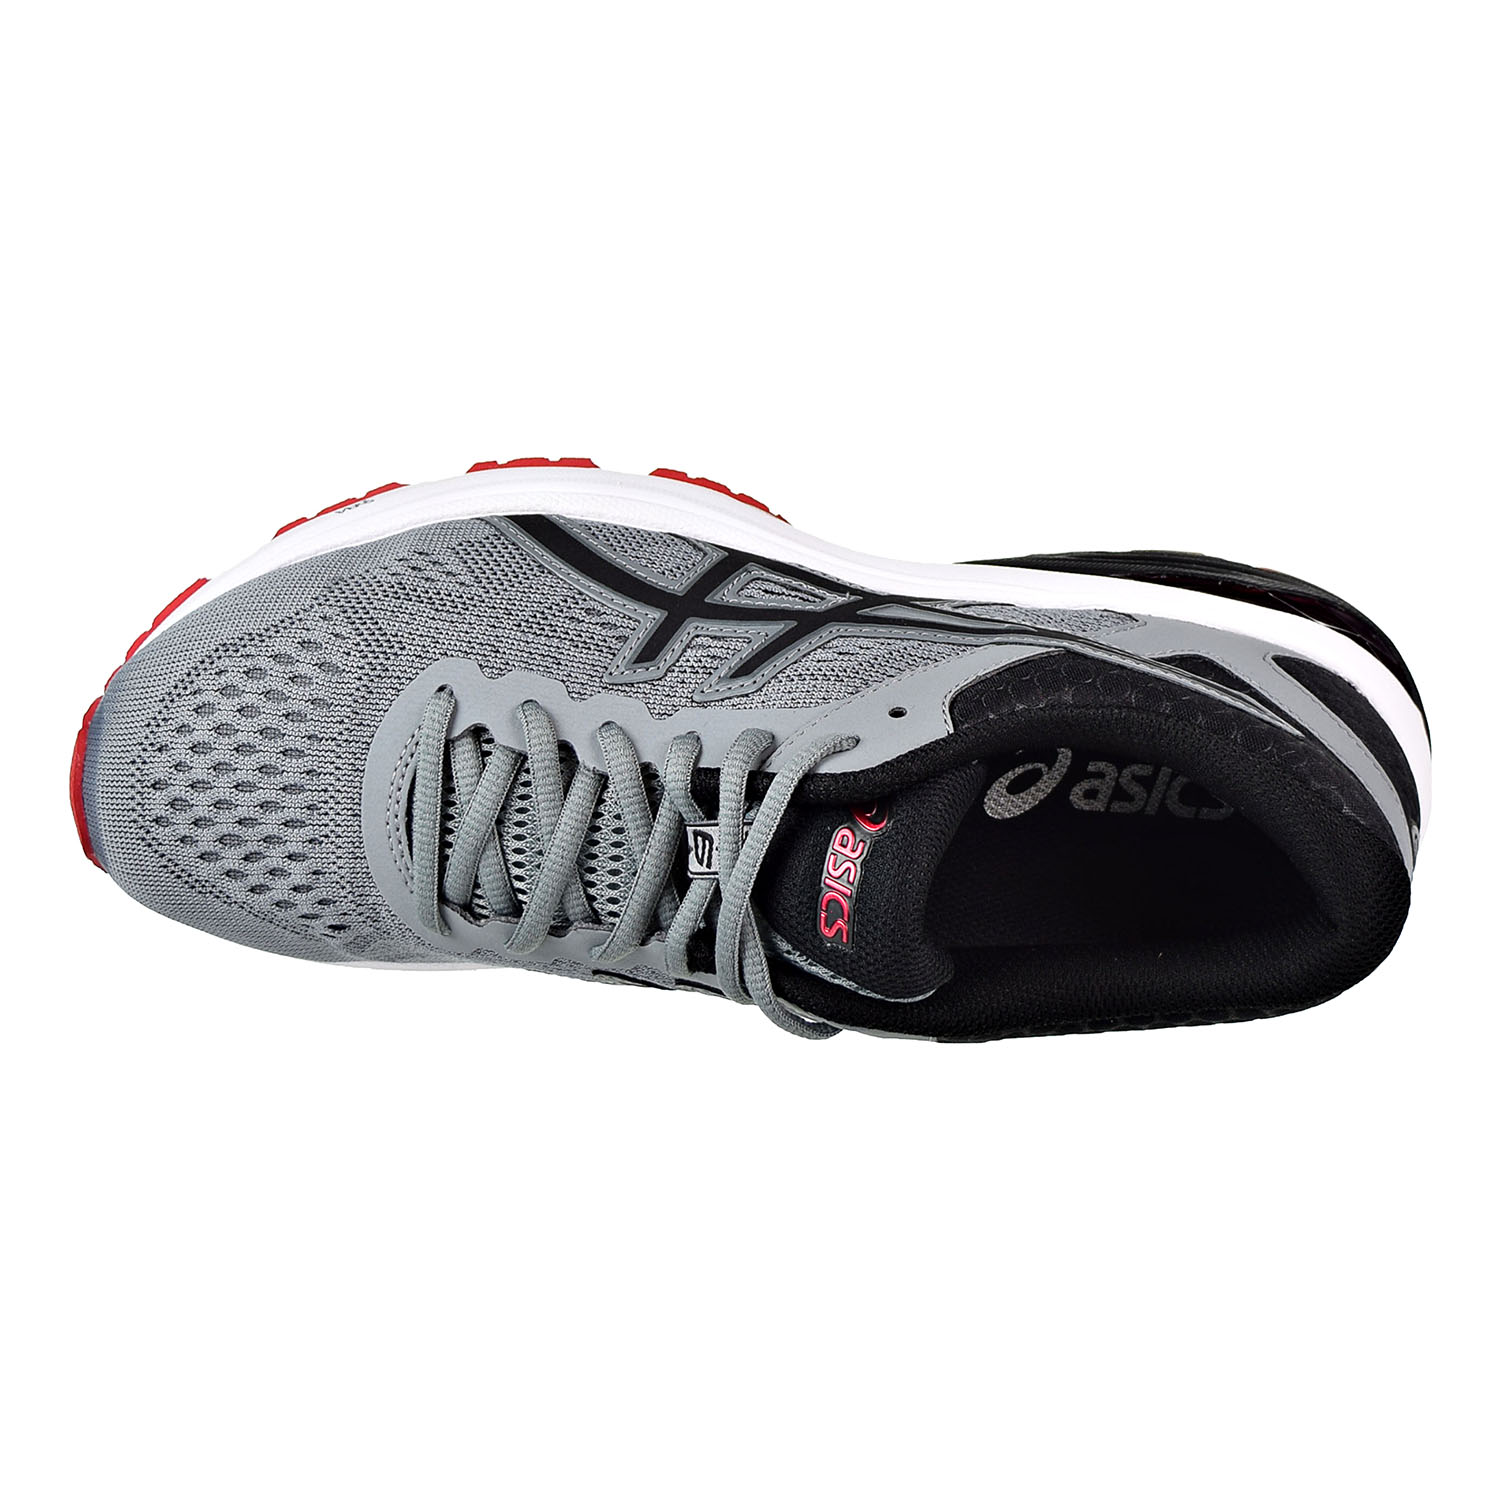 a05bdabc699 Details about Asics GT-1000 6 Men's Running Shoes Stone Grey/Black/Classic  Red T7A4N-1190